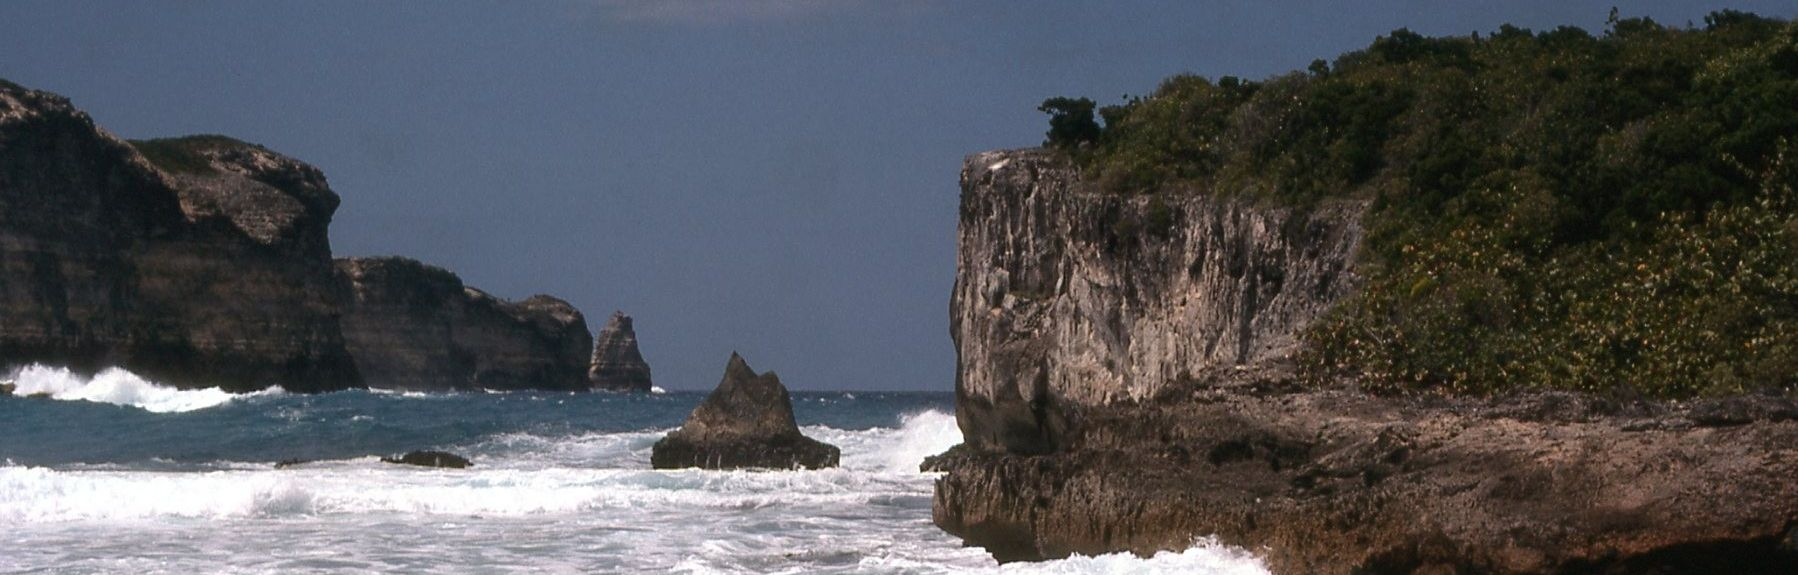 Pointe-Noire, Basse-Terre, Guadeloupe